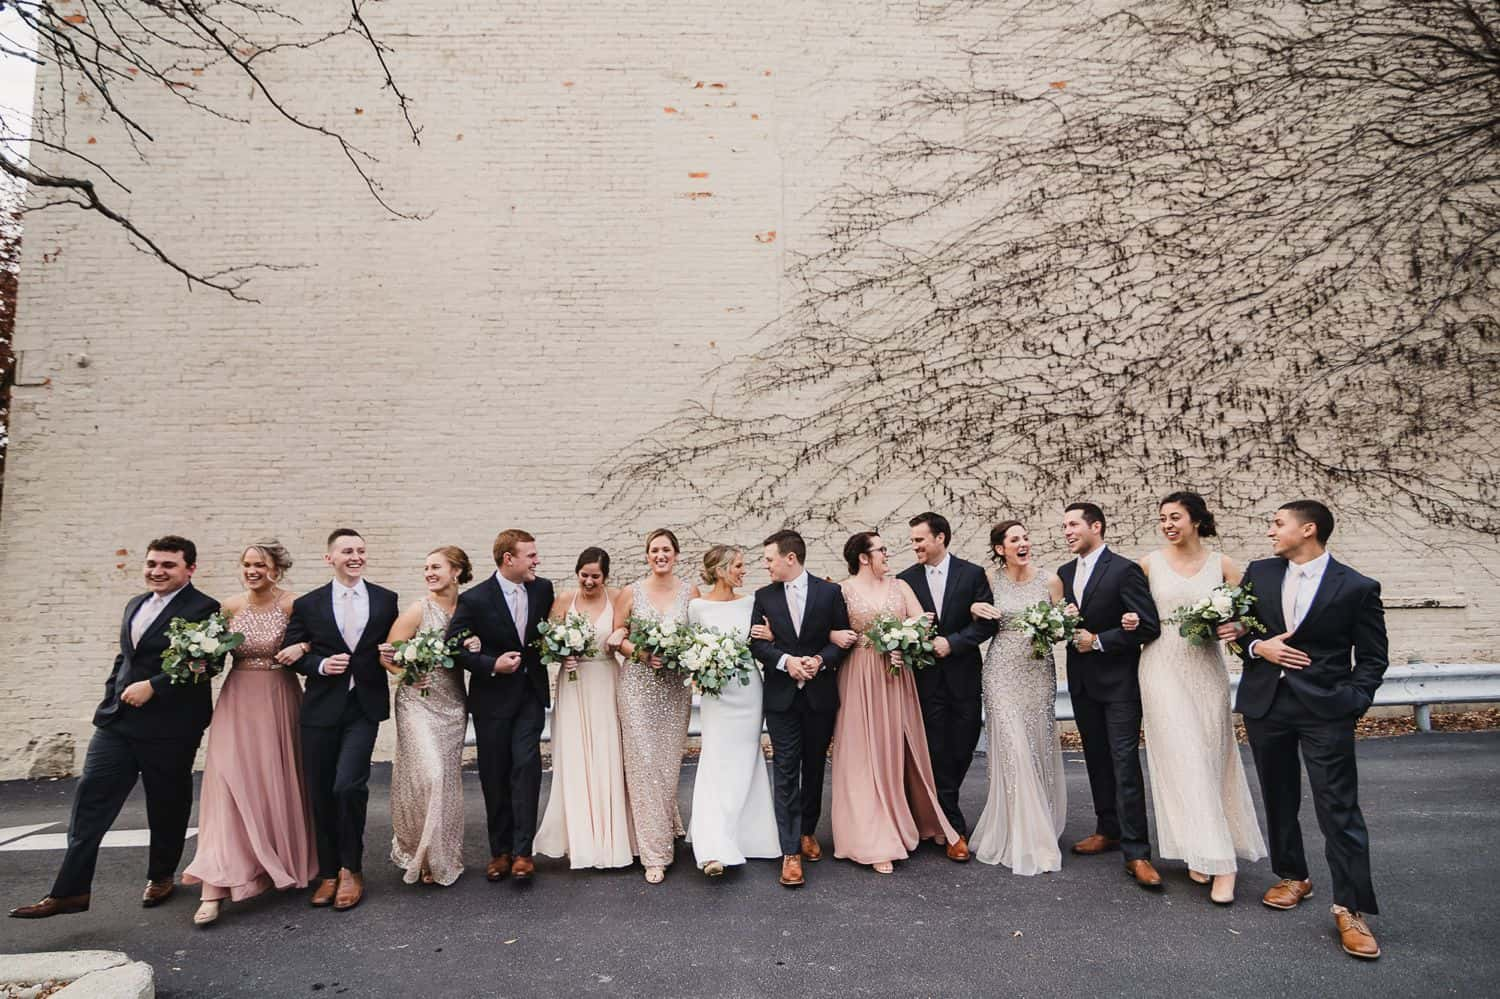 A wedding party in colorful dresses and black tuxes poses in front of a vine-covered wall.